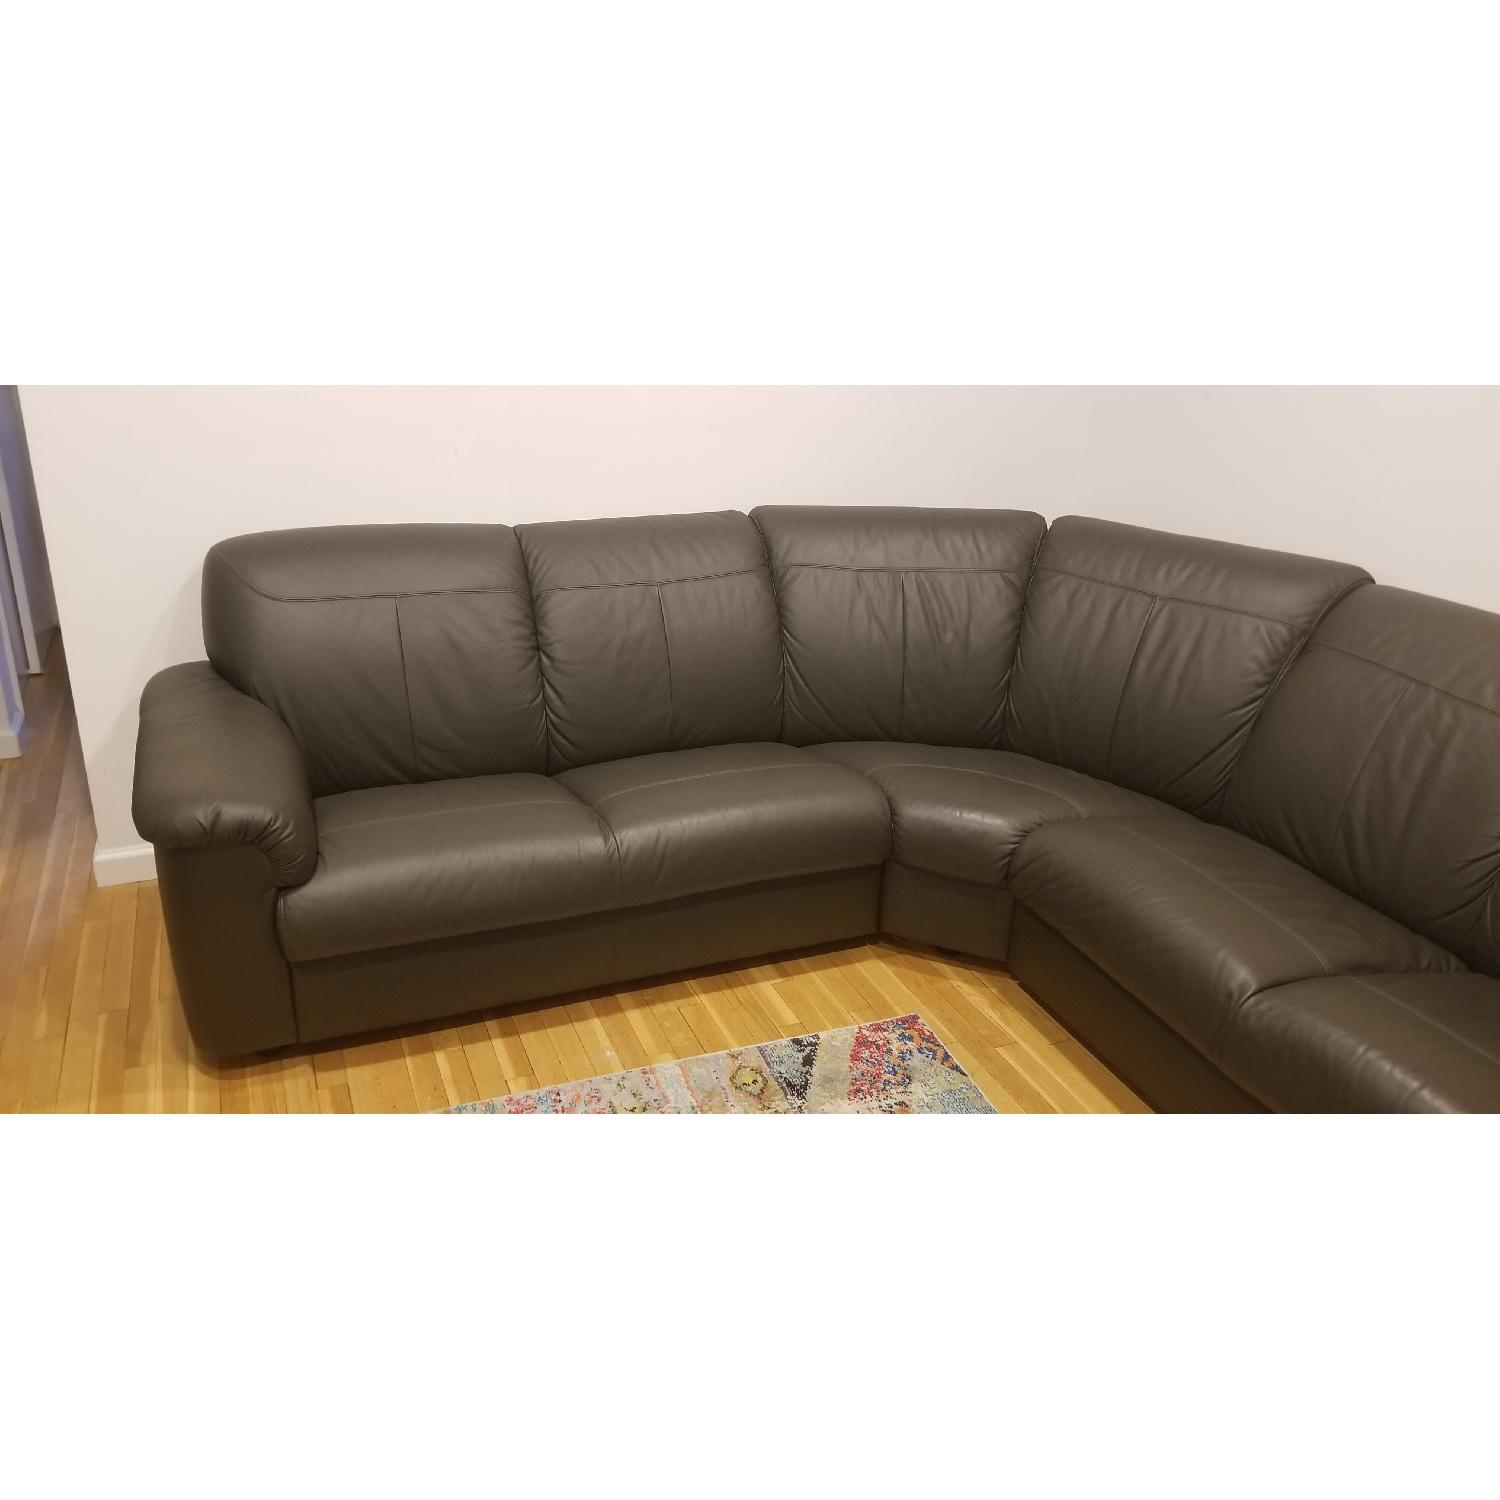 Ikea Timsfors Faux Leather Sectional Sofa - image-3